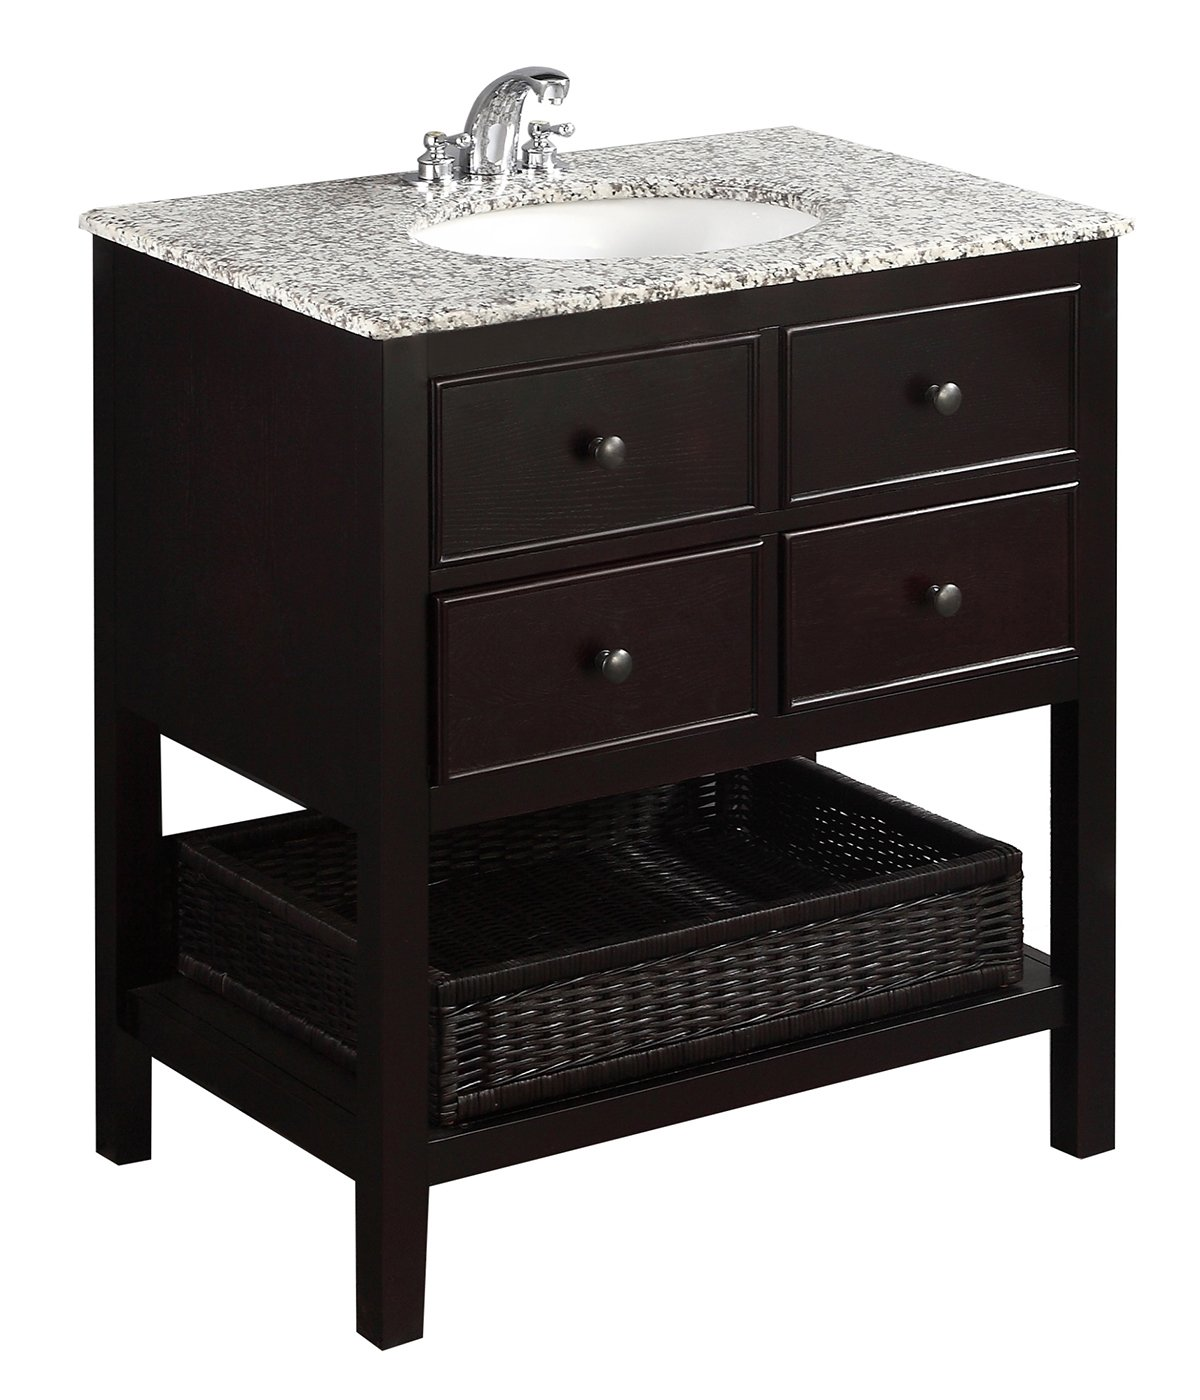 Simpli Home NL-DAVENPORT-EB-30-2A Burnaby 30 inch Contemporary Bath Vanity in Espresso with Dappled Grey Granite Top